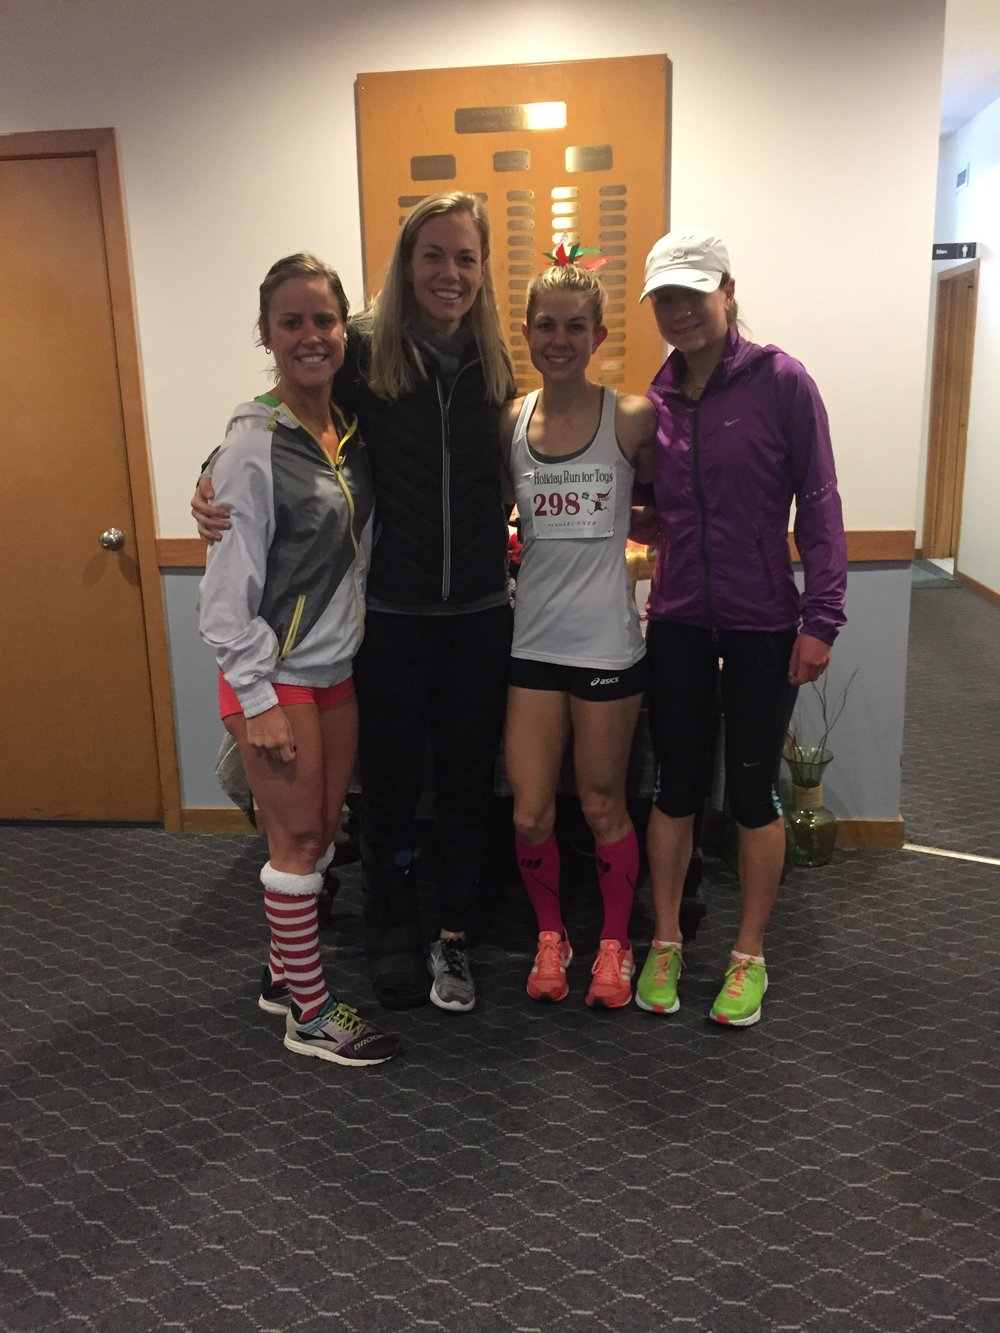 """Some fast ladies representing """"McKirdy Trained"""" And Gotham City Runners!"""